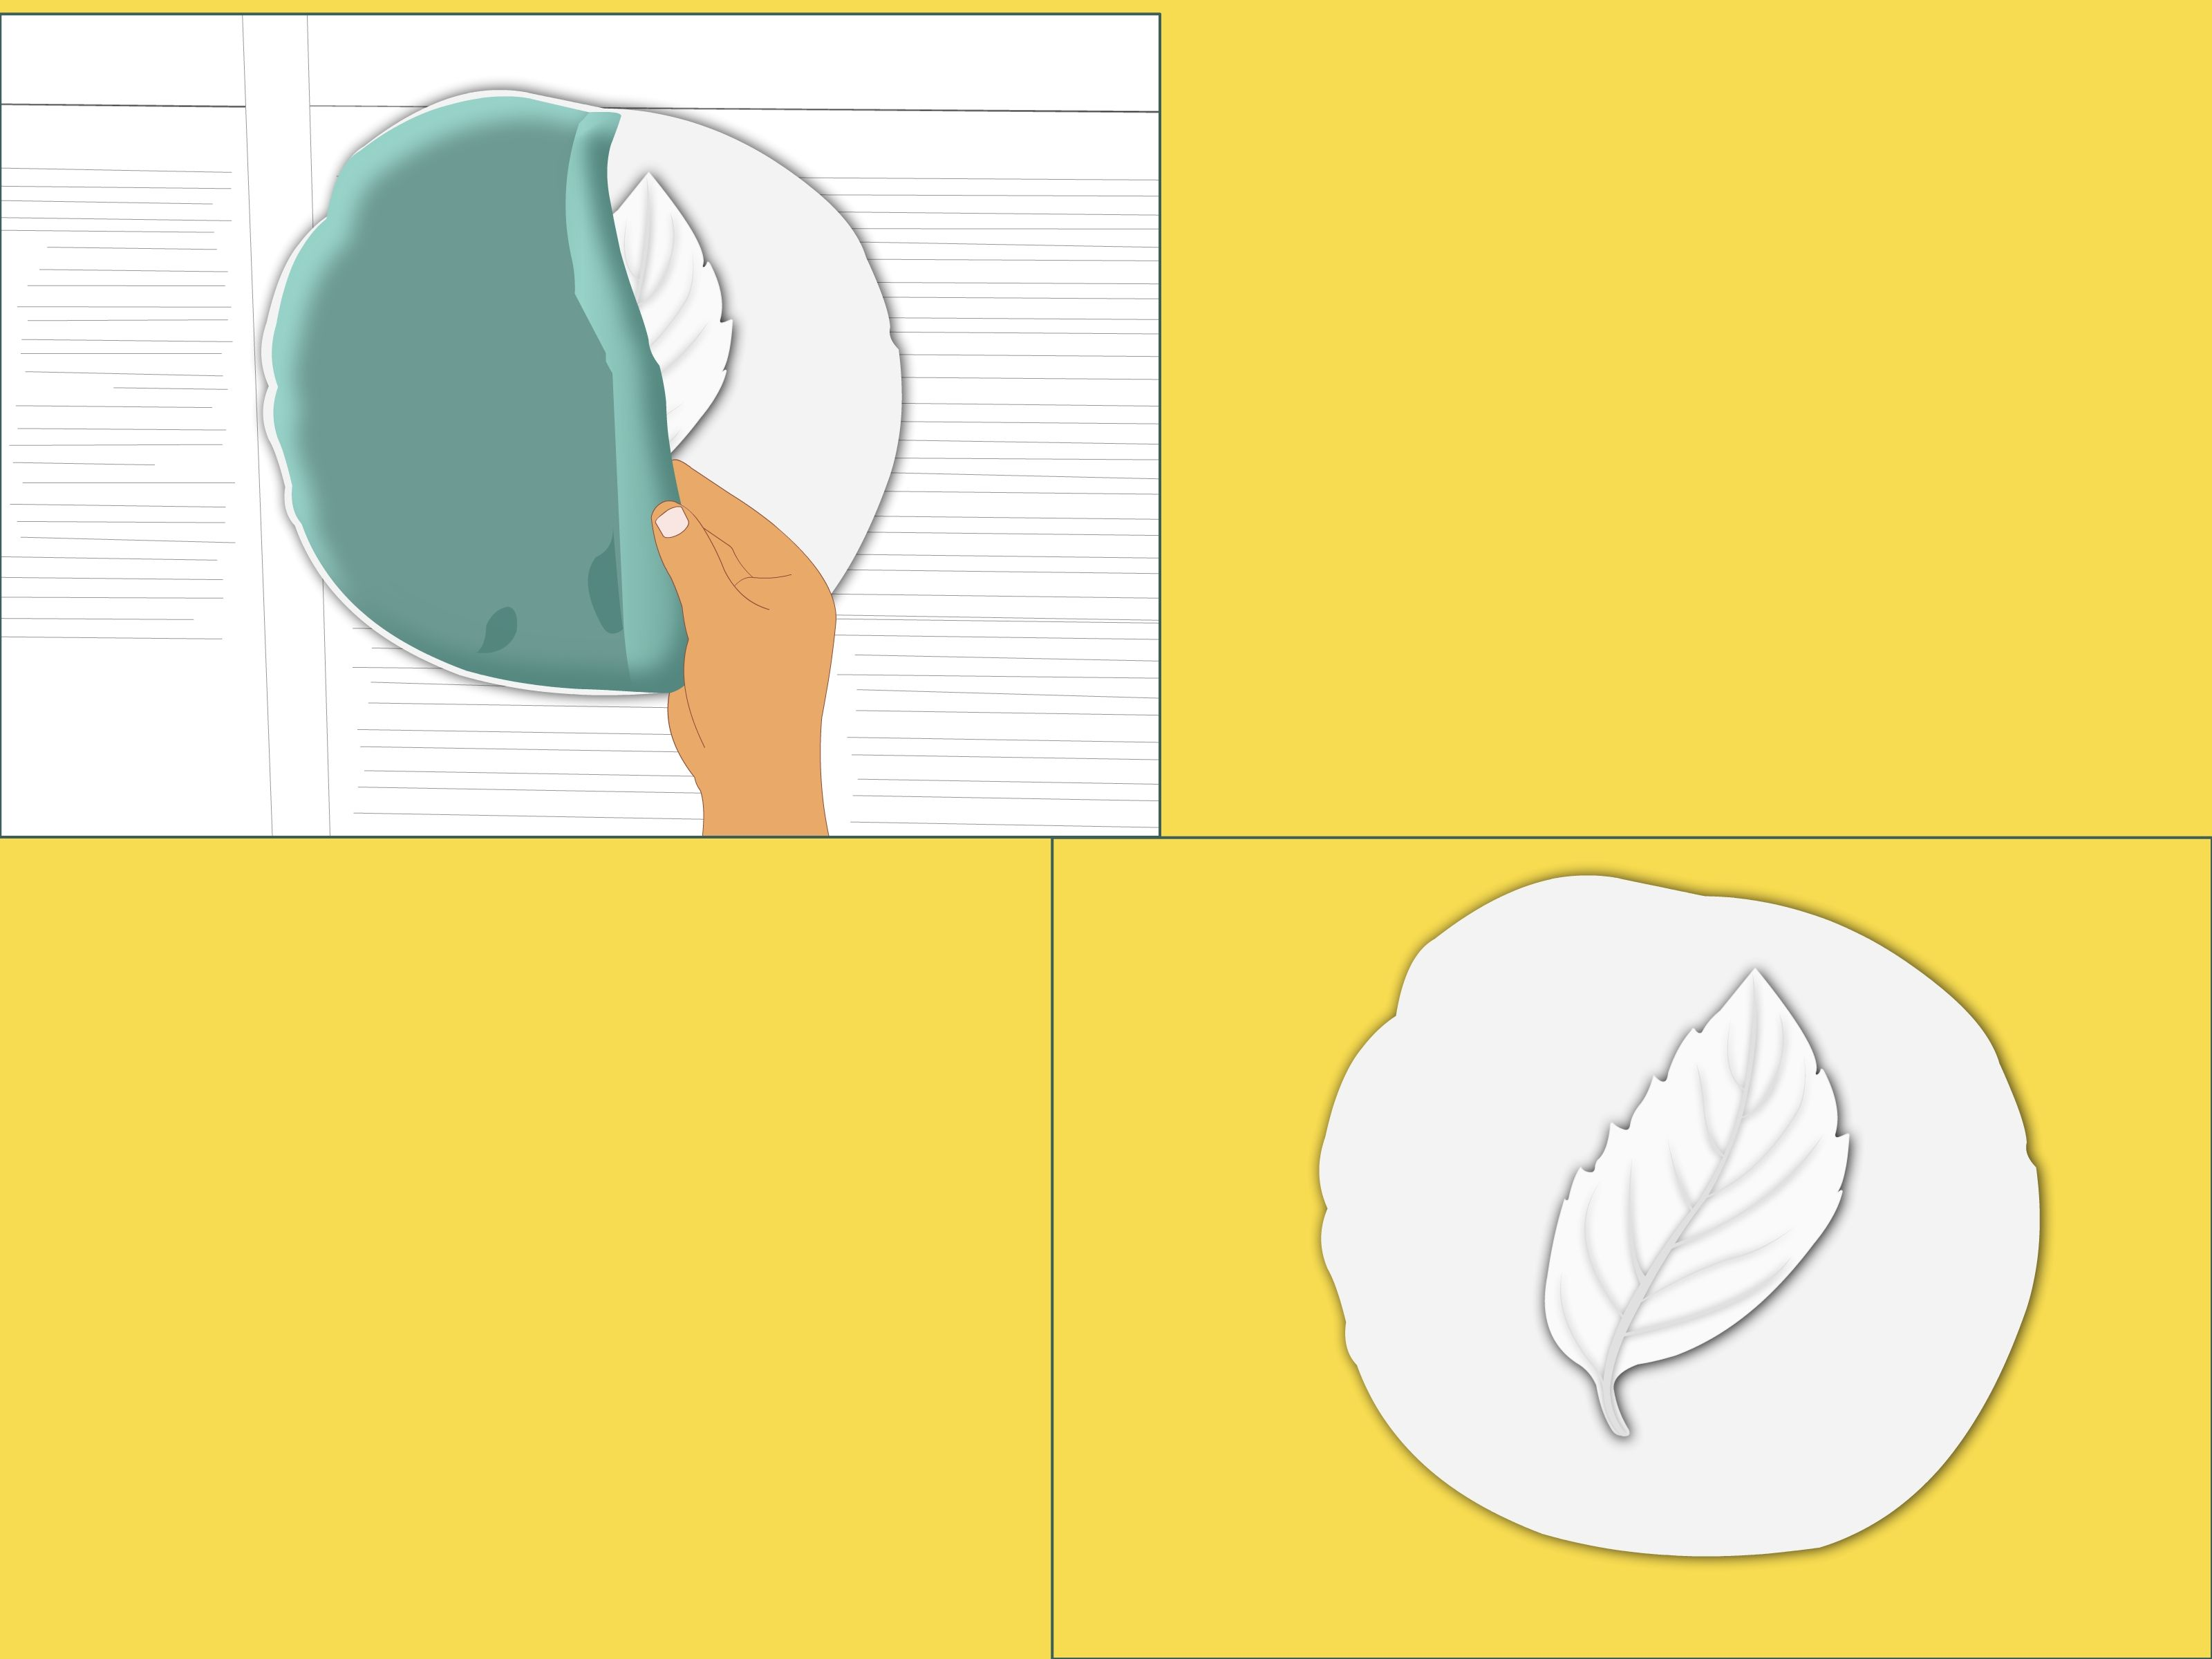 How to Make Fossils Using Plaster of Paris